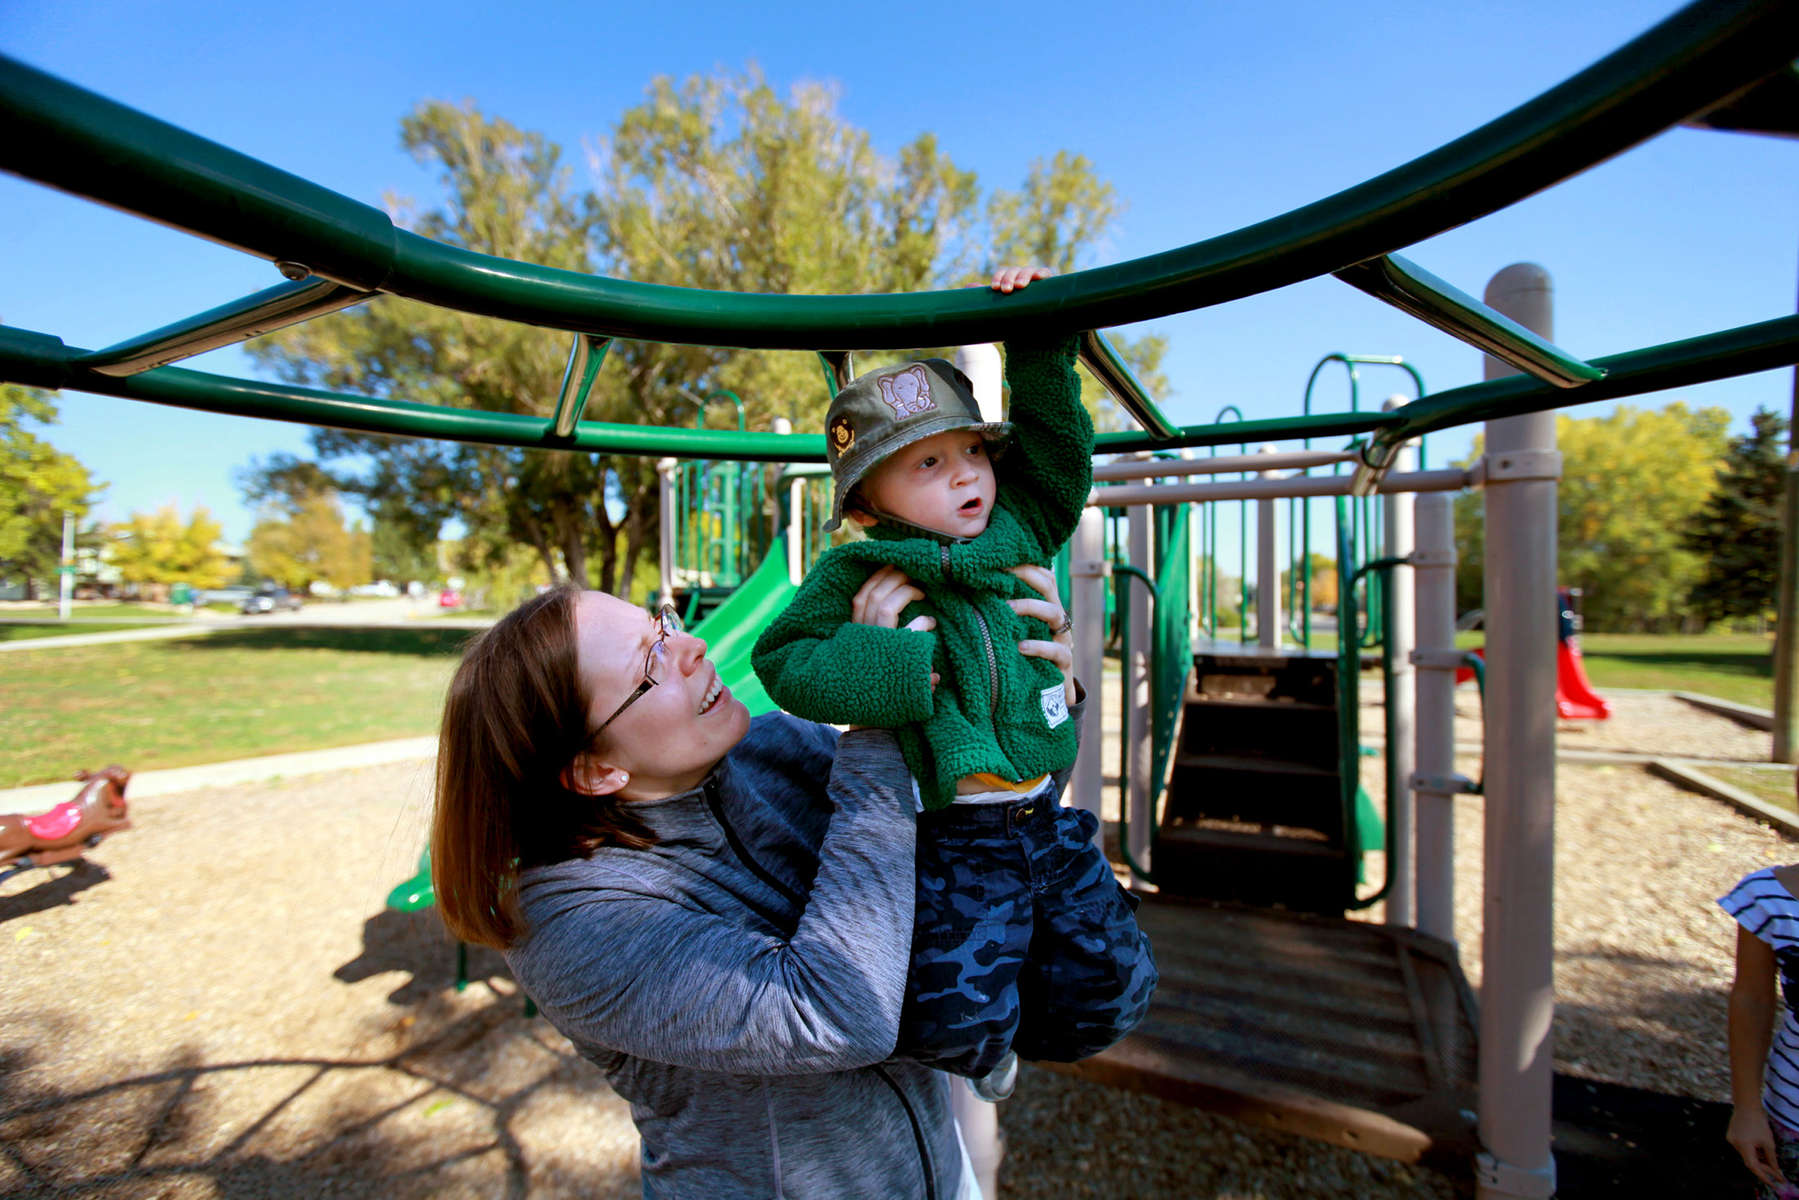 The changes to Colorado's screening process have made a difference for the Kelly family, who's son was born with the same metabolic disorder that Noah had died of three years earlier. Because of changes to the process, the family was notified three days after baby Kelly was born, plenty of time for him to receive the treatment he needed. {quote}Rapid newborn screening absolutely saved his life that night. I am 100% convinced of that,{quote} says his mother Kay.